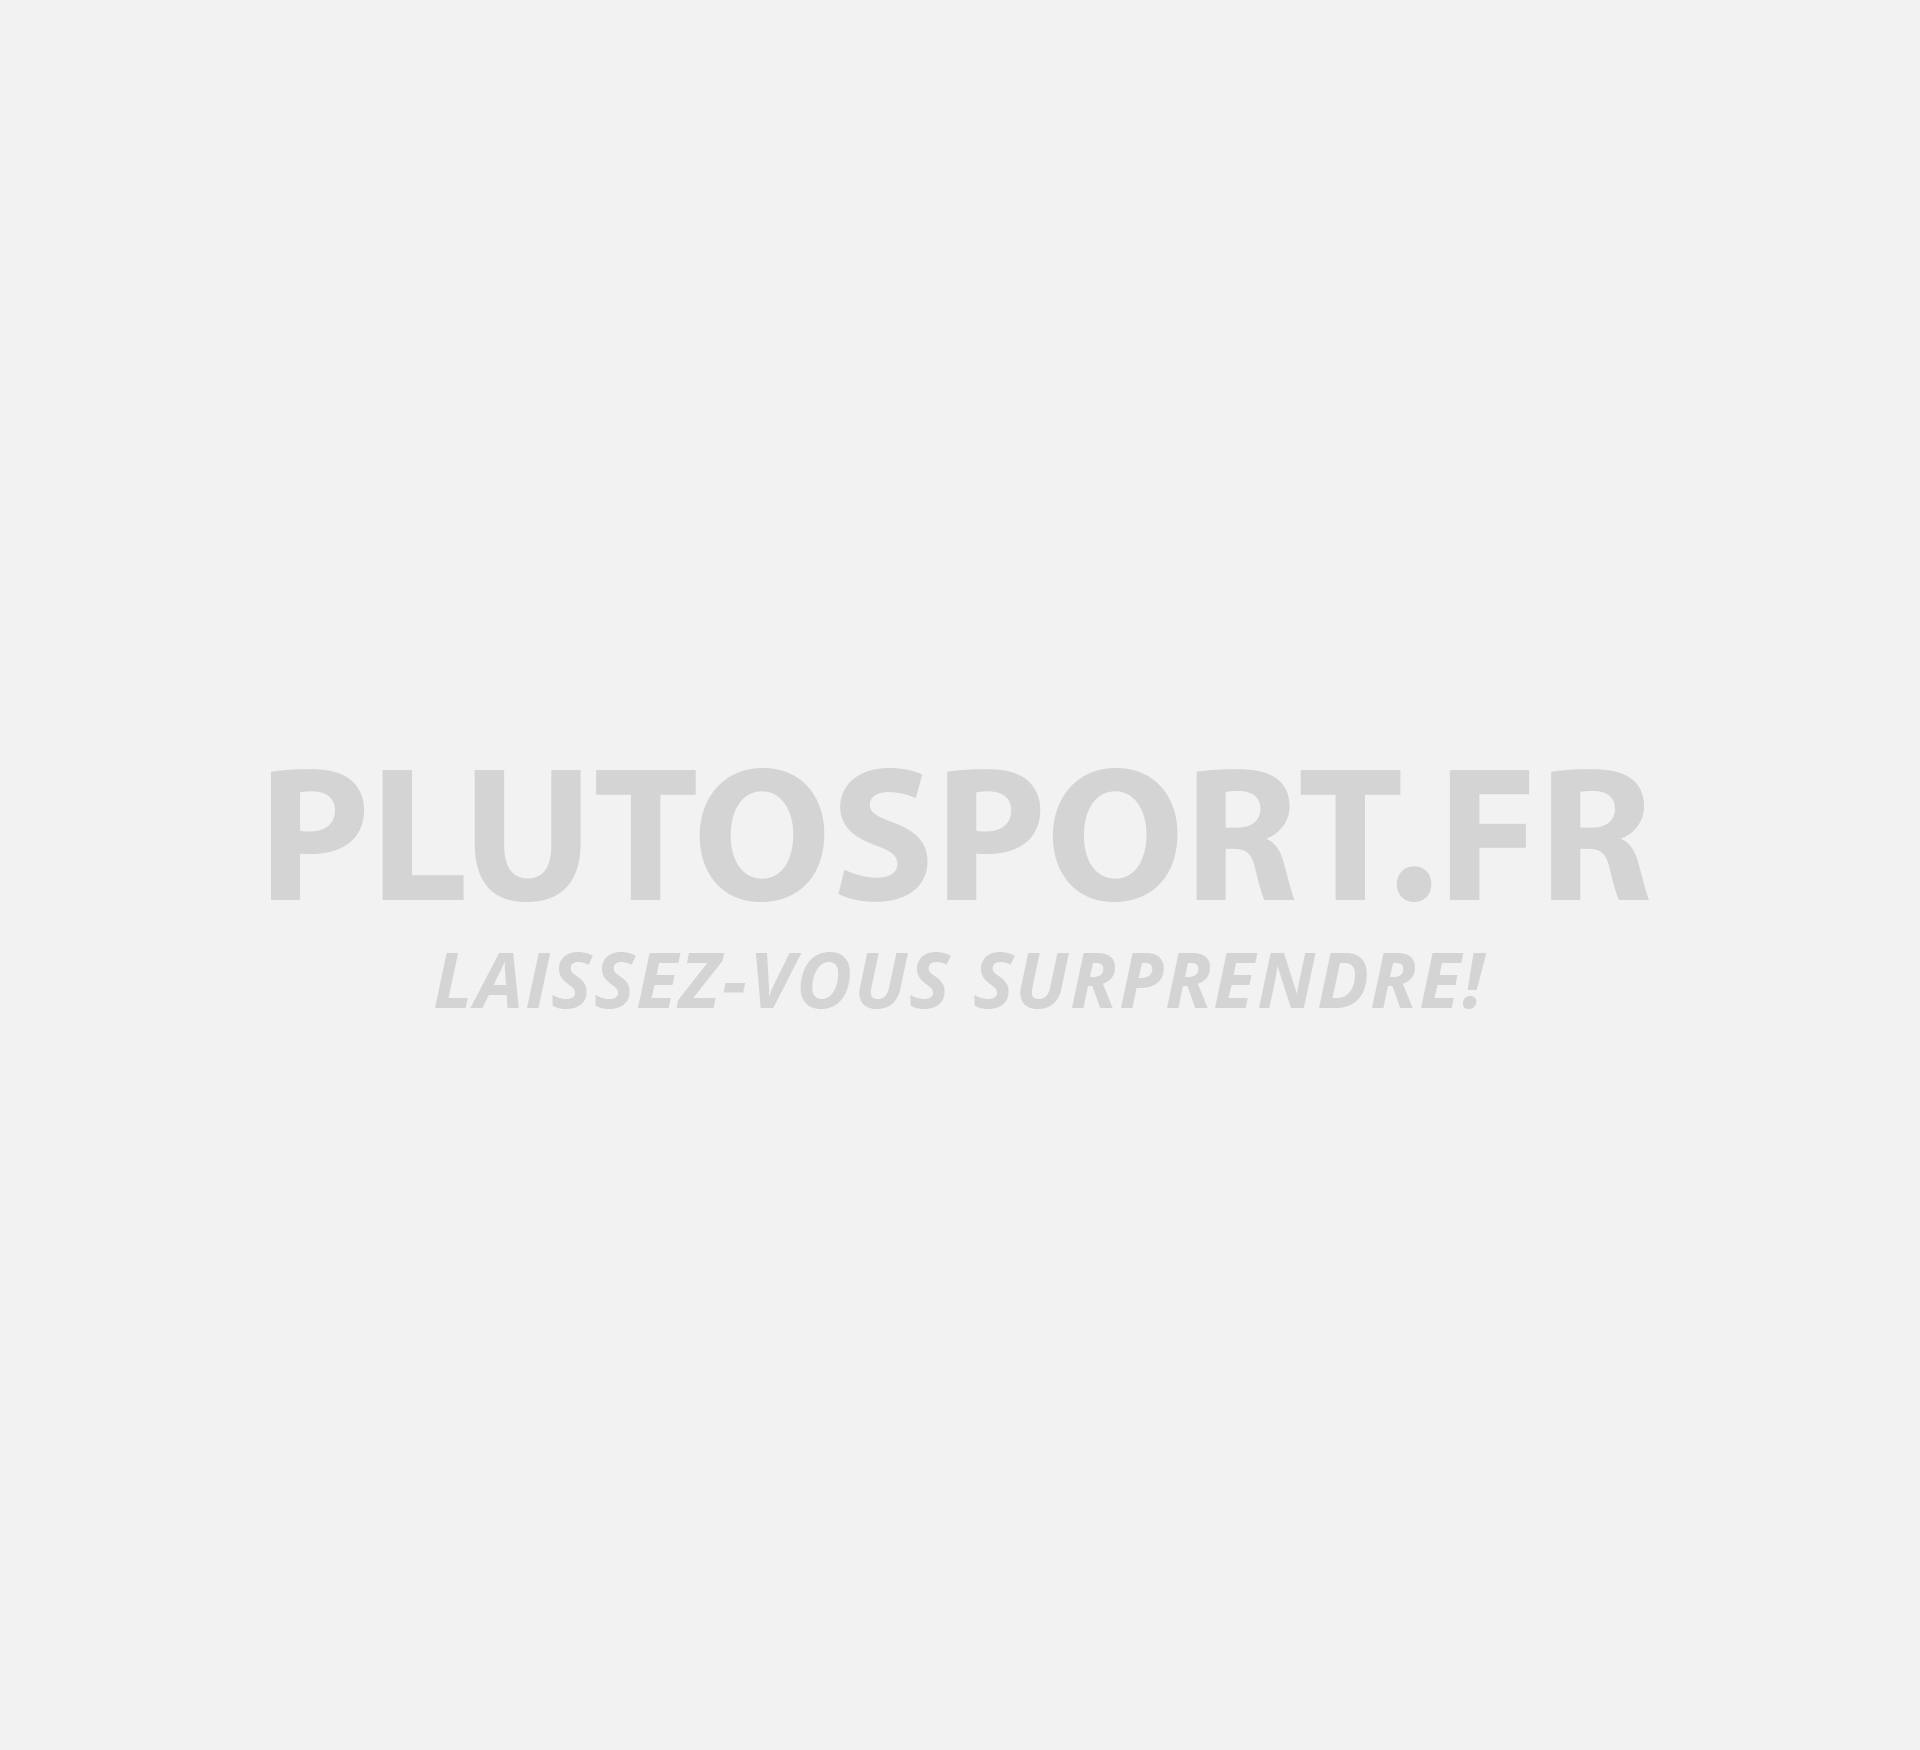 Le short de maintien Uhlsport Anatomic Goalkeeper Longshorts Senior